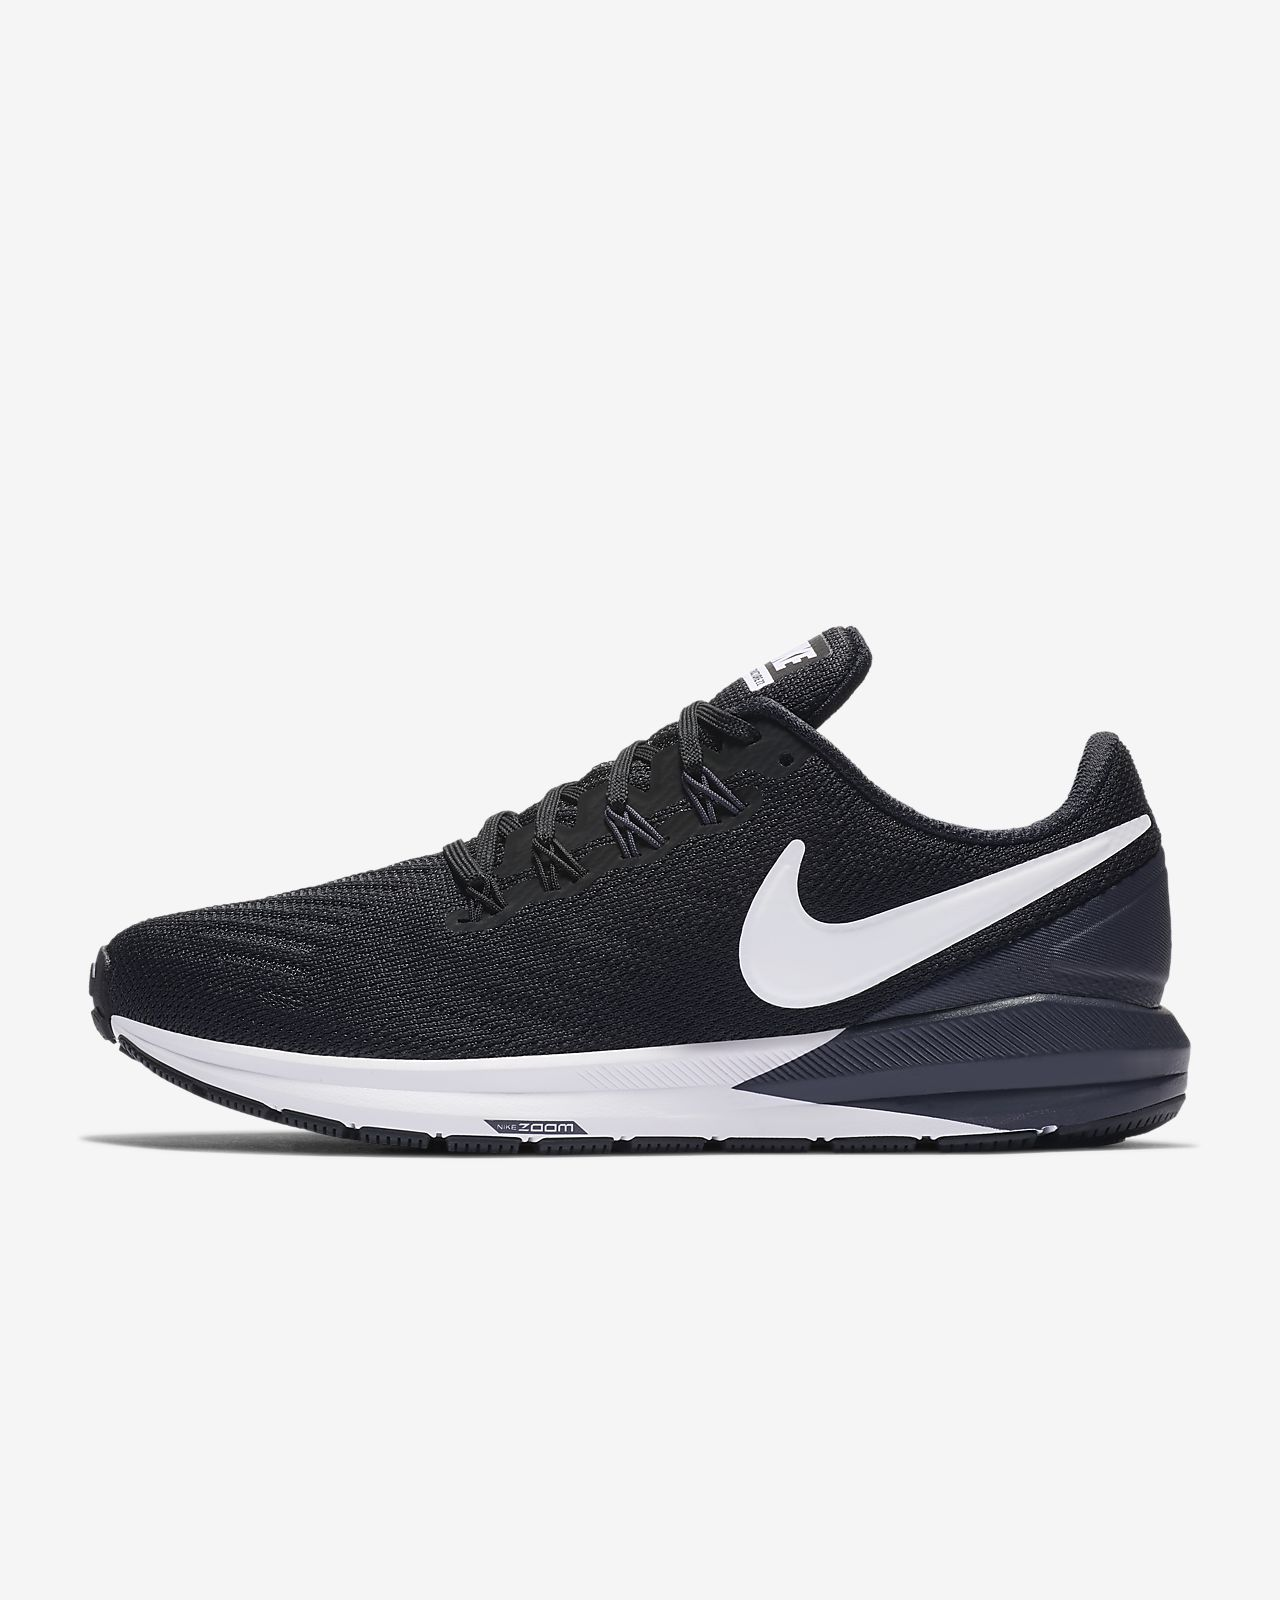 buy online 2725b 907a4 ... Nike Air Zoom Structure 22 Women s Running Shoe